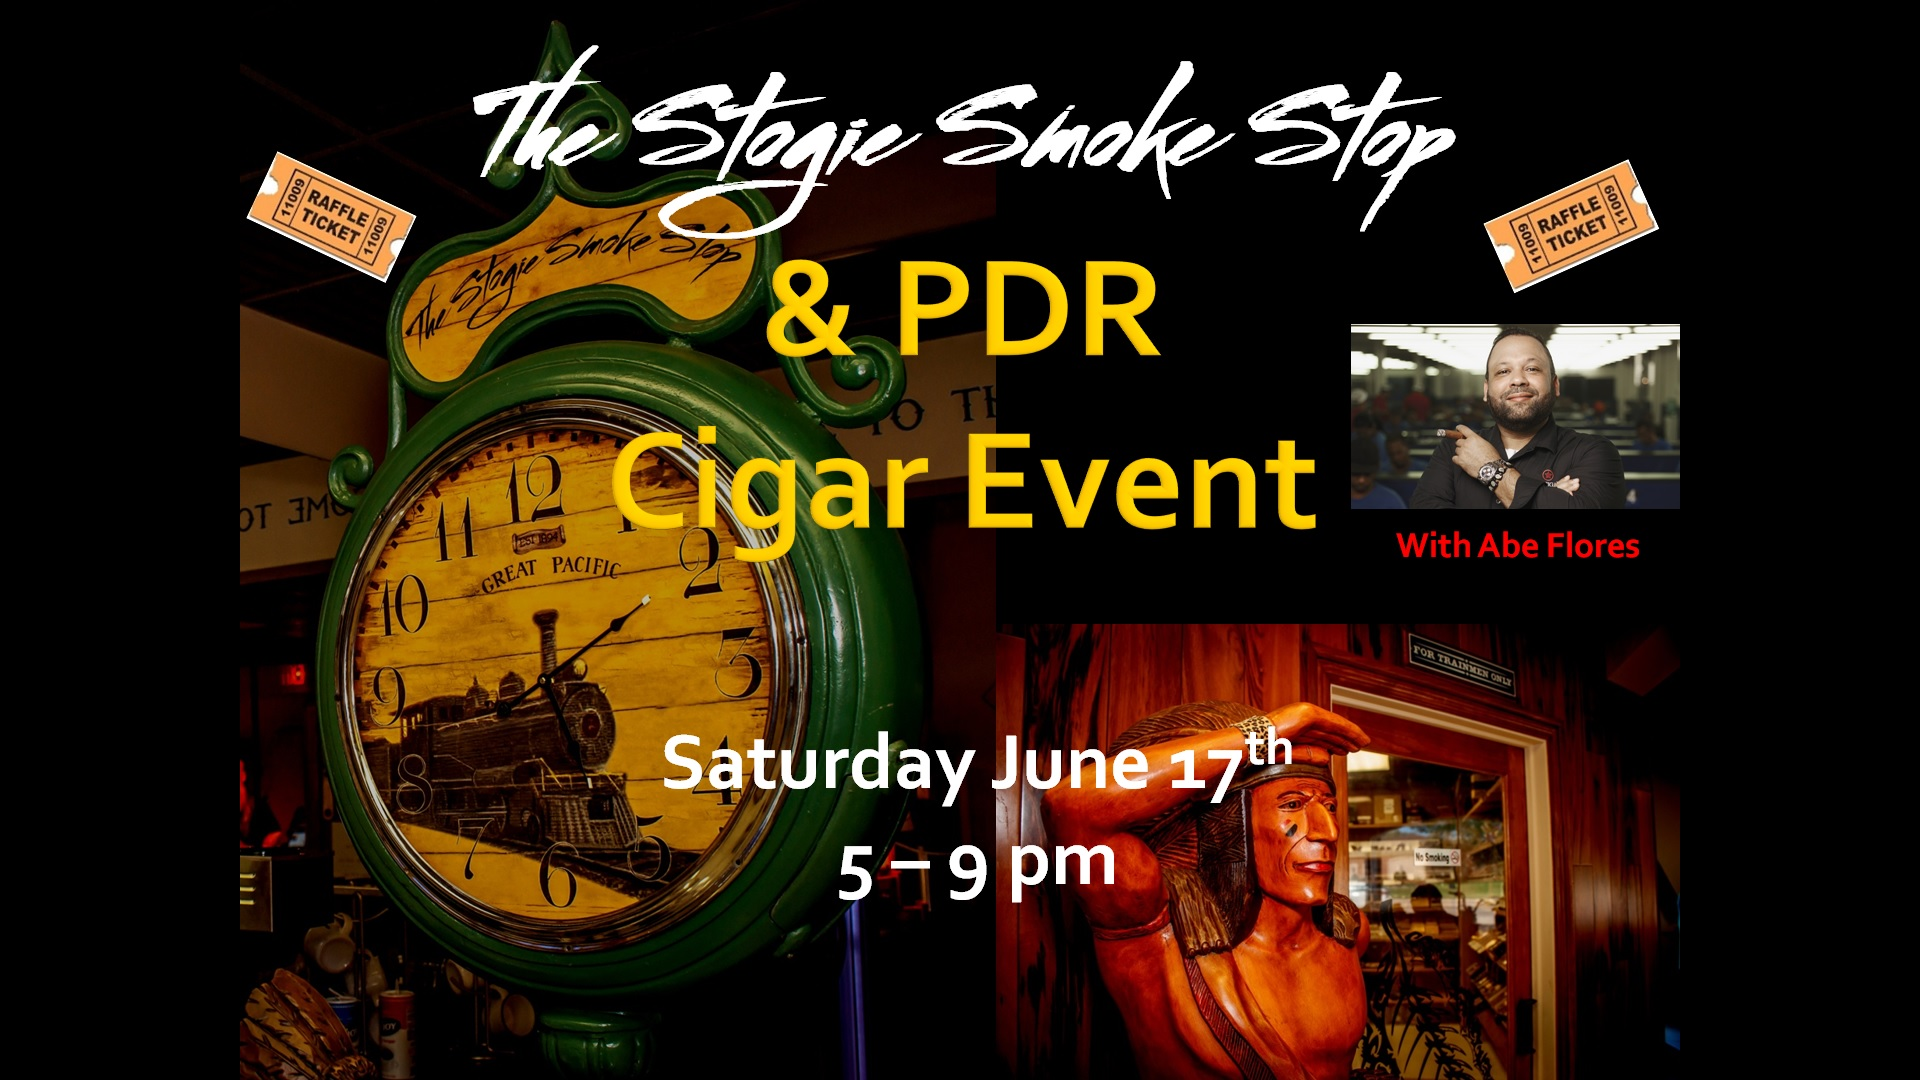 PDR Cigar Event with Abe Flores